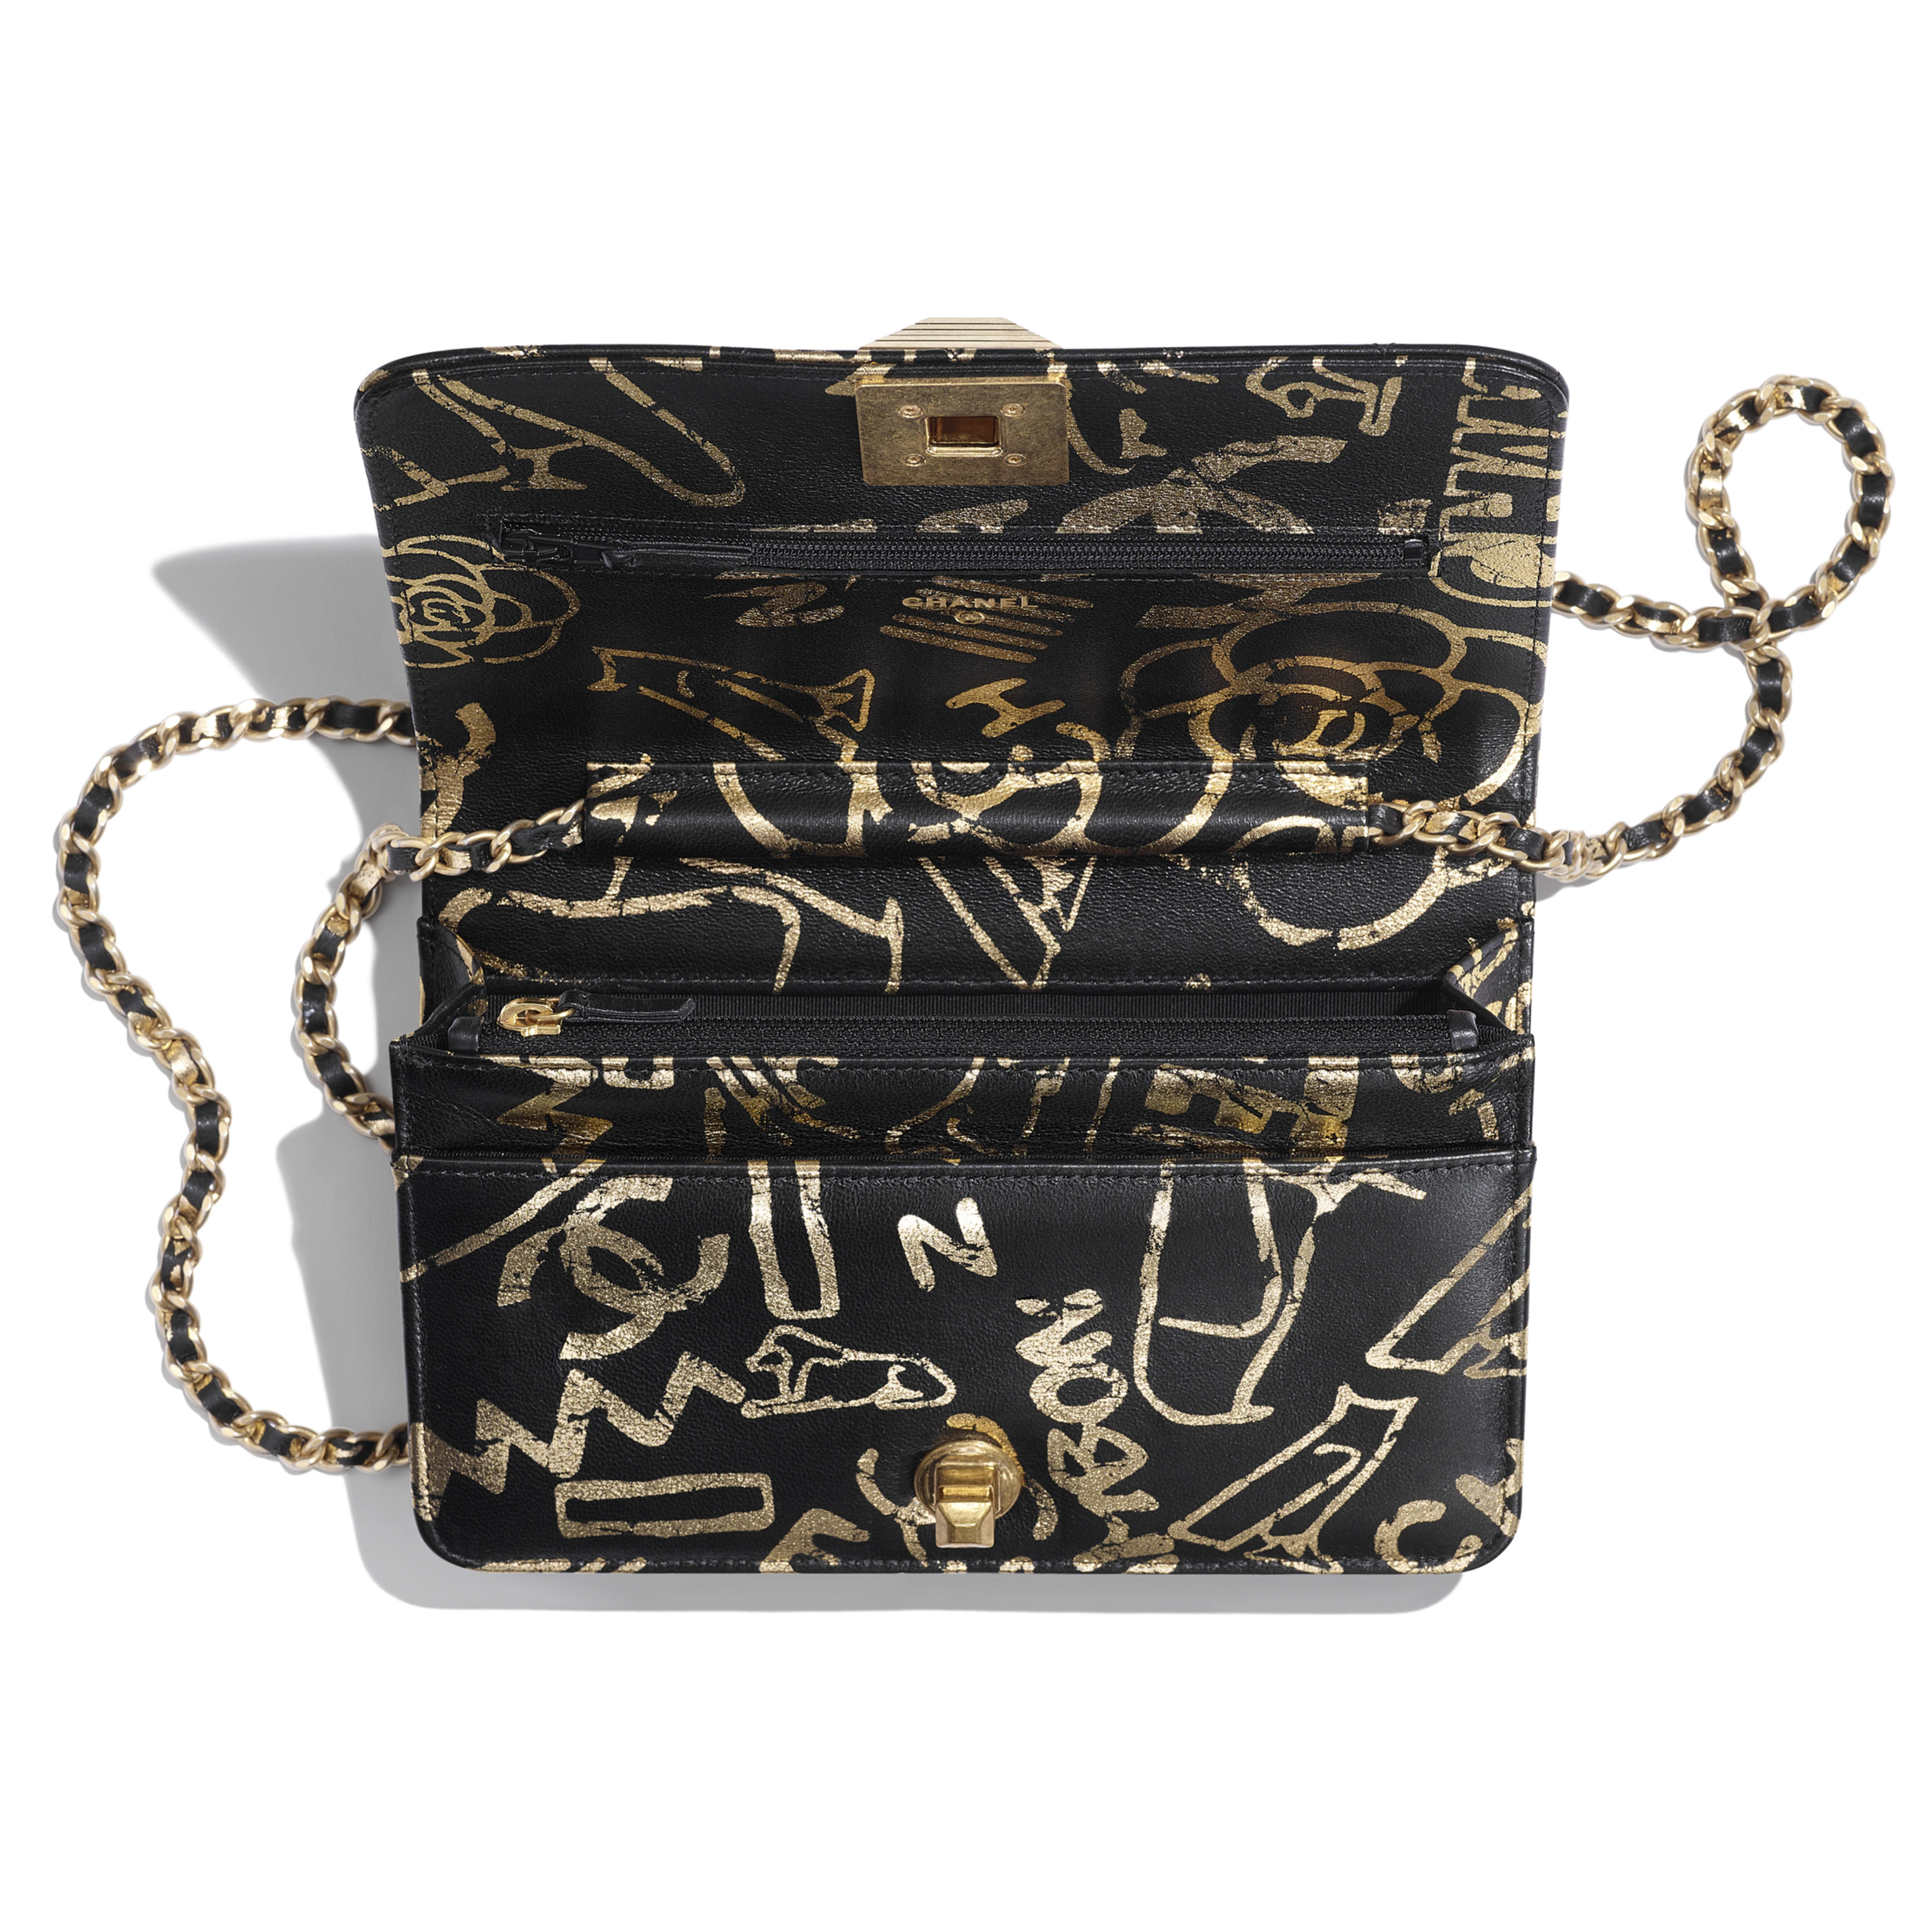 Wallet on Chain - Black & Gold - Printed Calfskin & Gold-Tone Metal - Other view - see full sized version